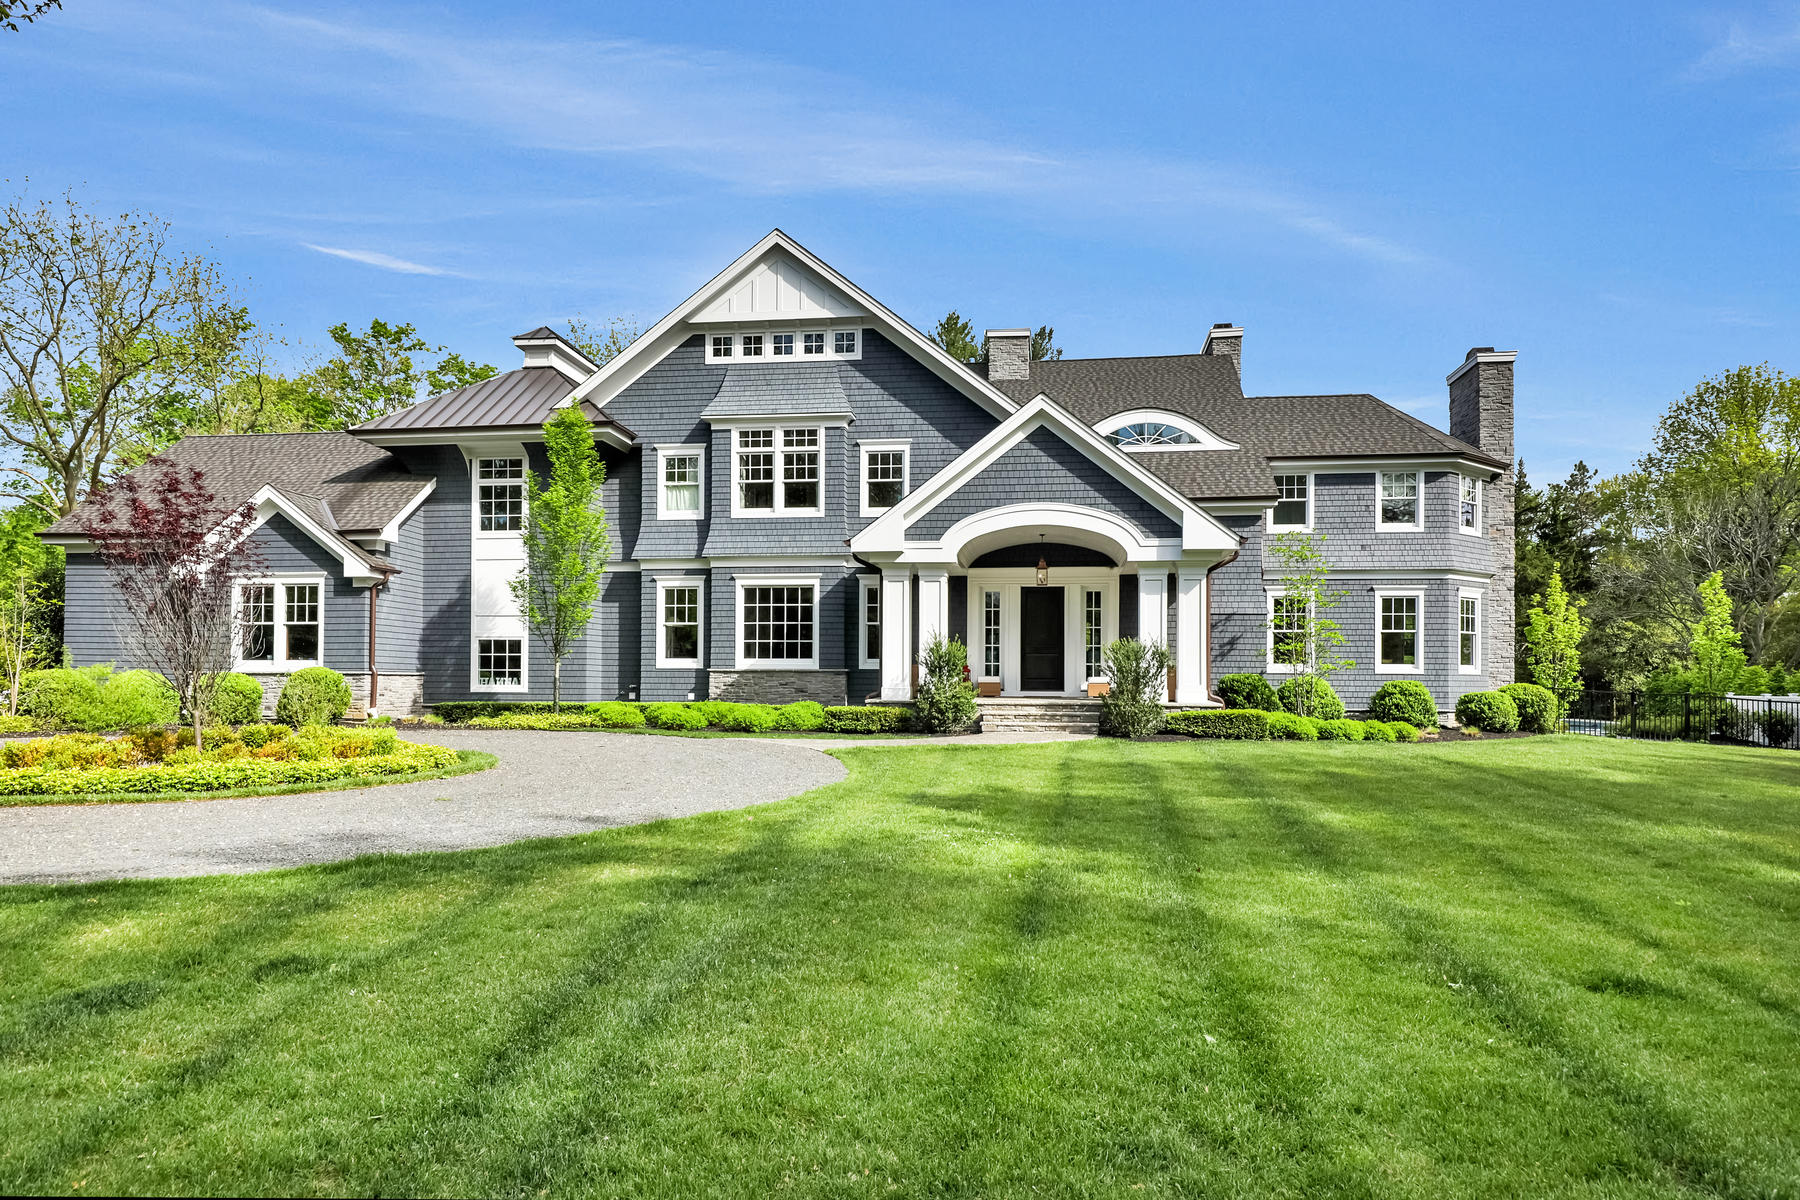 Single Family Homes for Sale at Spectacular Rumson Home 2 Buttonwood Lane Rumson, New Jersey 07760 United States